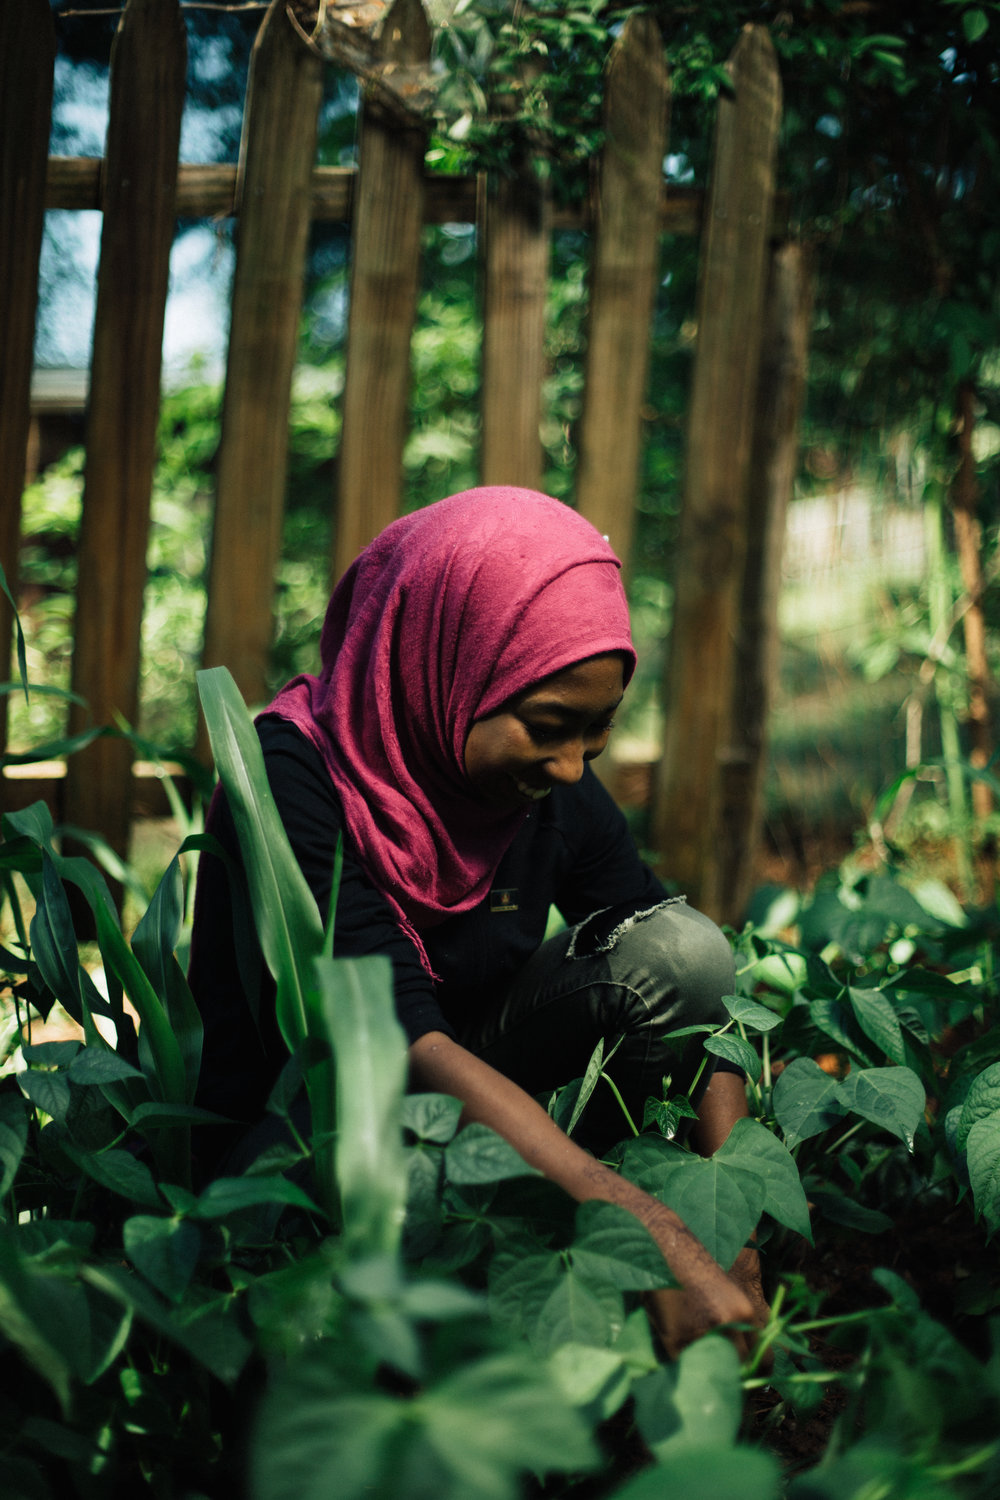 Our Mission - The Jolly Avenue Garden is a vibrant community gathering space that fosters our collective experience of beauty, belonging and friendship with the land and with one another. We seek to enrich the Clarkston community by offering growing spaces where refugee gardeners grow their own food to feed their families and friends; by facilitating educational opportunities for K-12 youth through agriculture programming, mentorship and employment, and STEAM curriculum initiatives; and by providing our friends in the programs access to healthy food and nutrition education through our Healthy Food Experience.